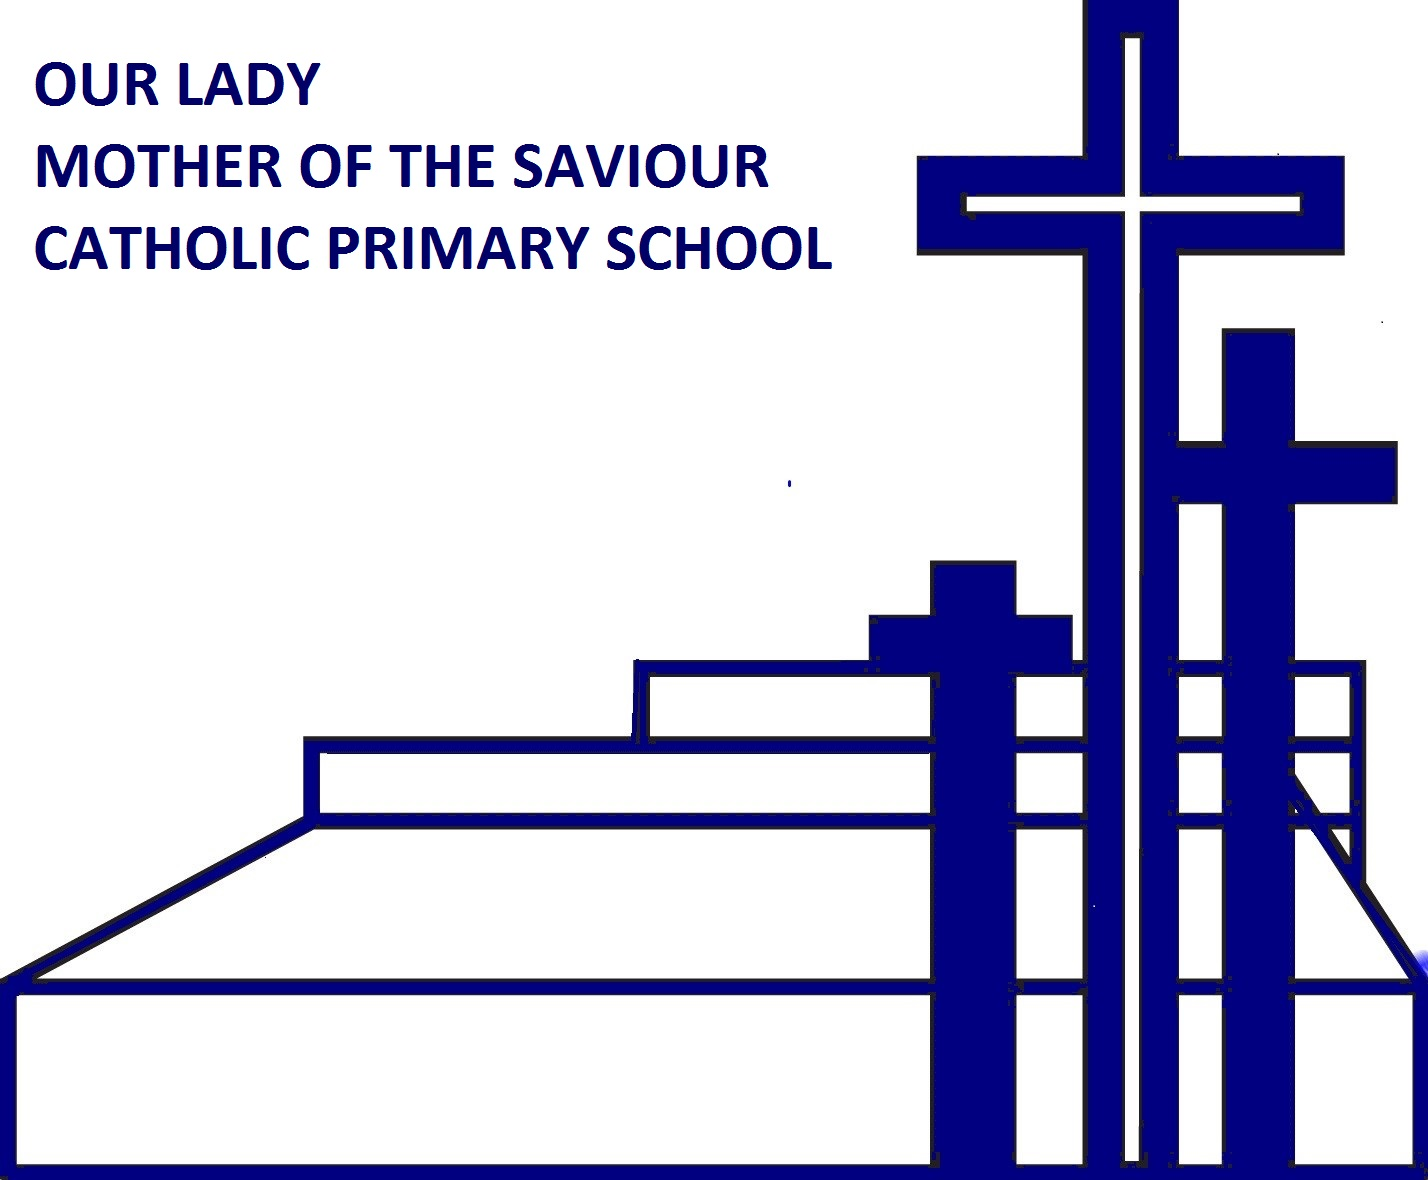 Our Lady Mother of the Saviour Catholic Primary School